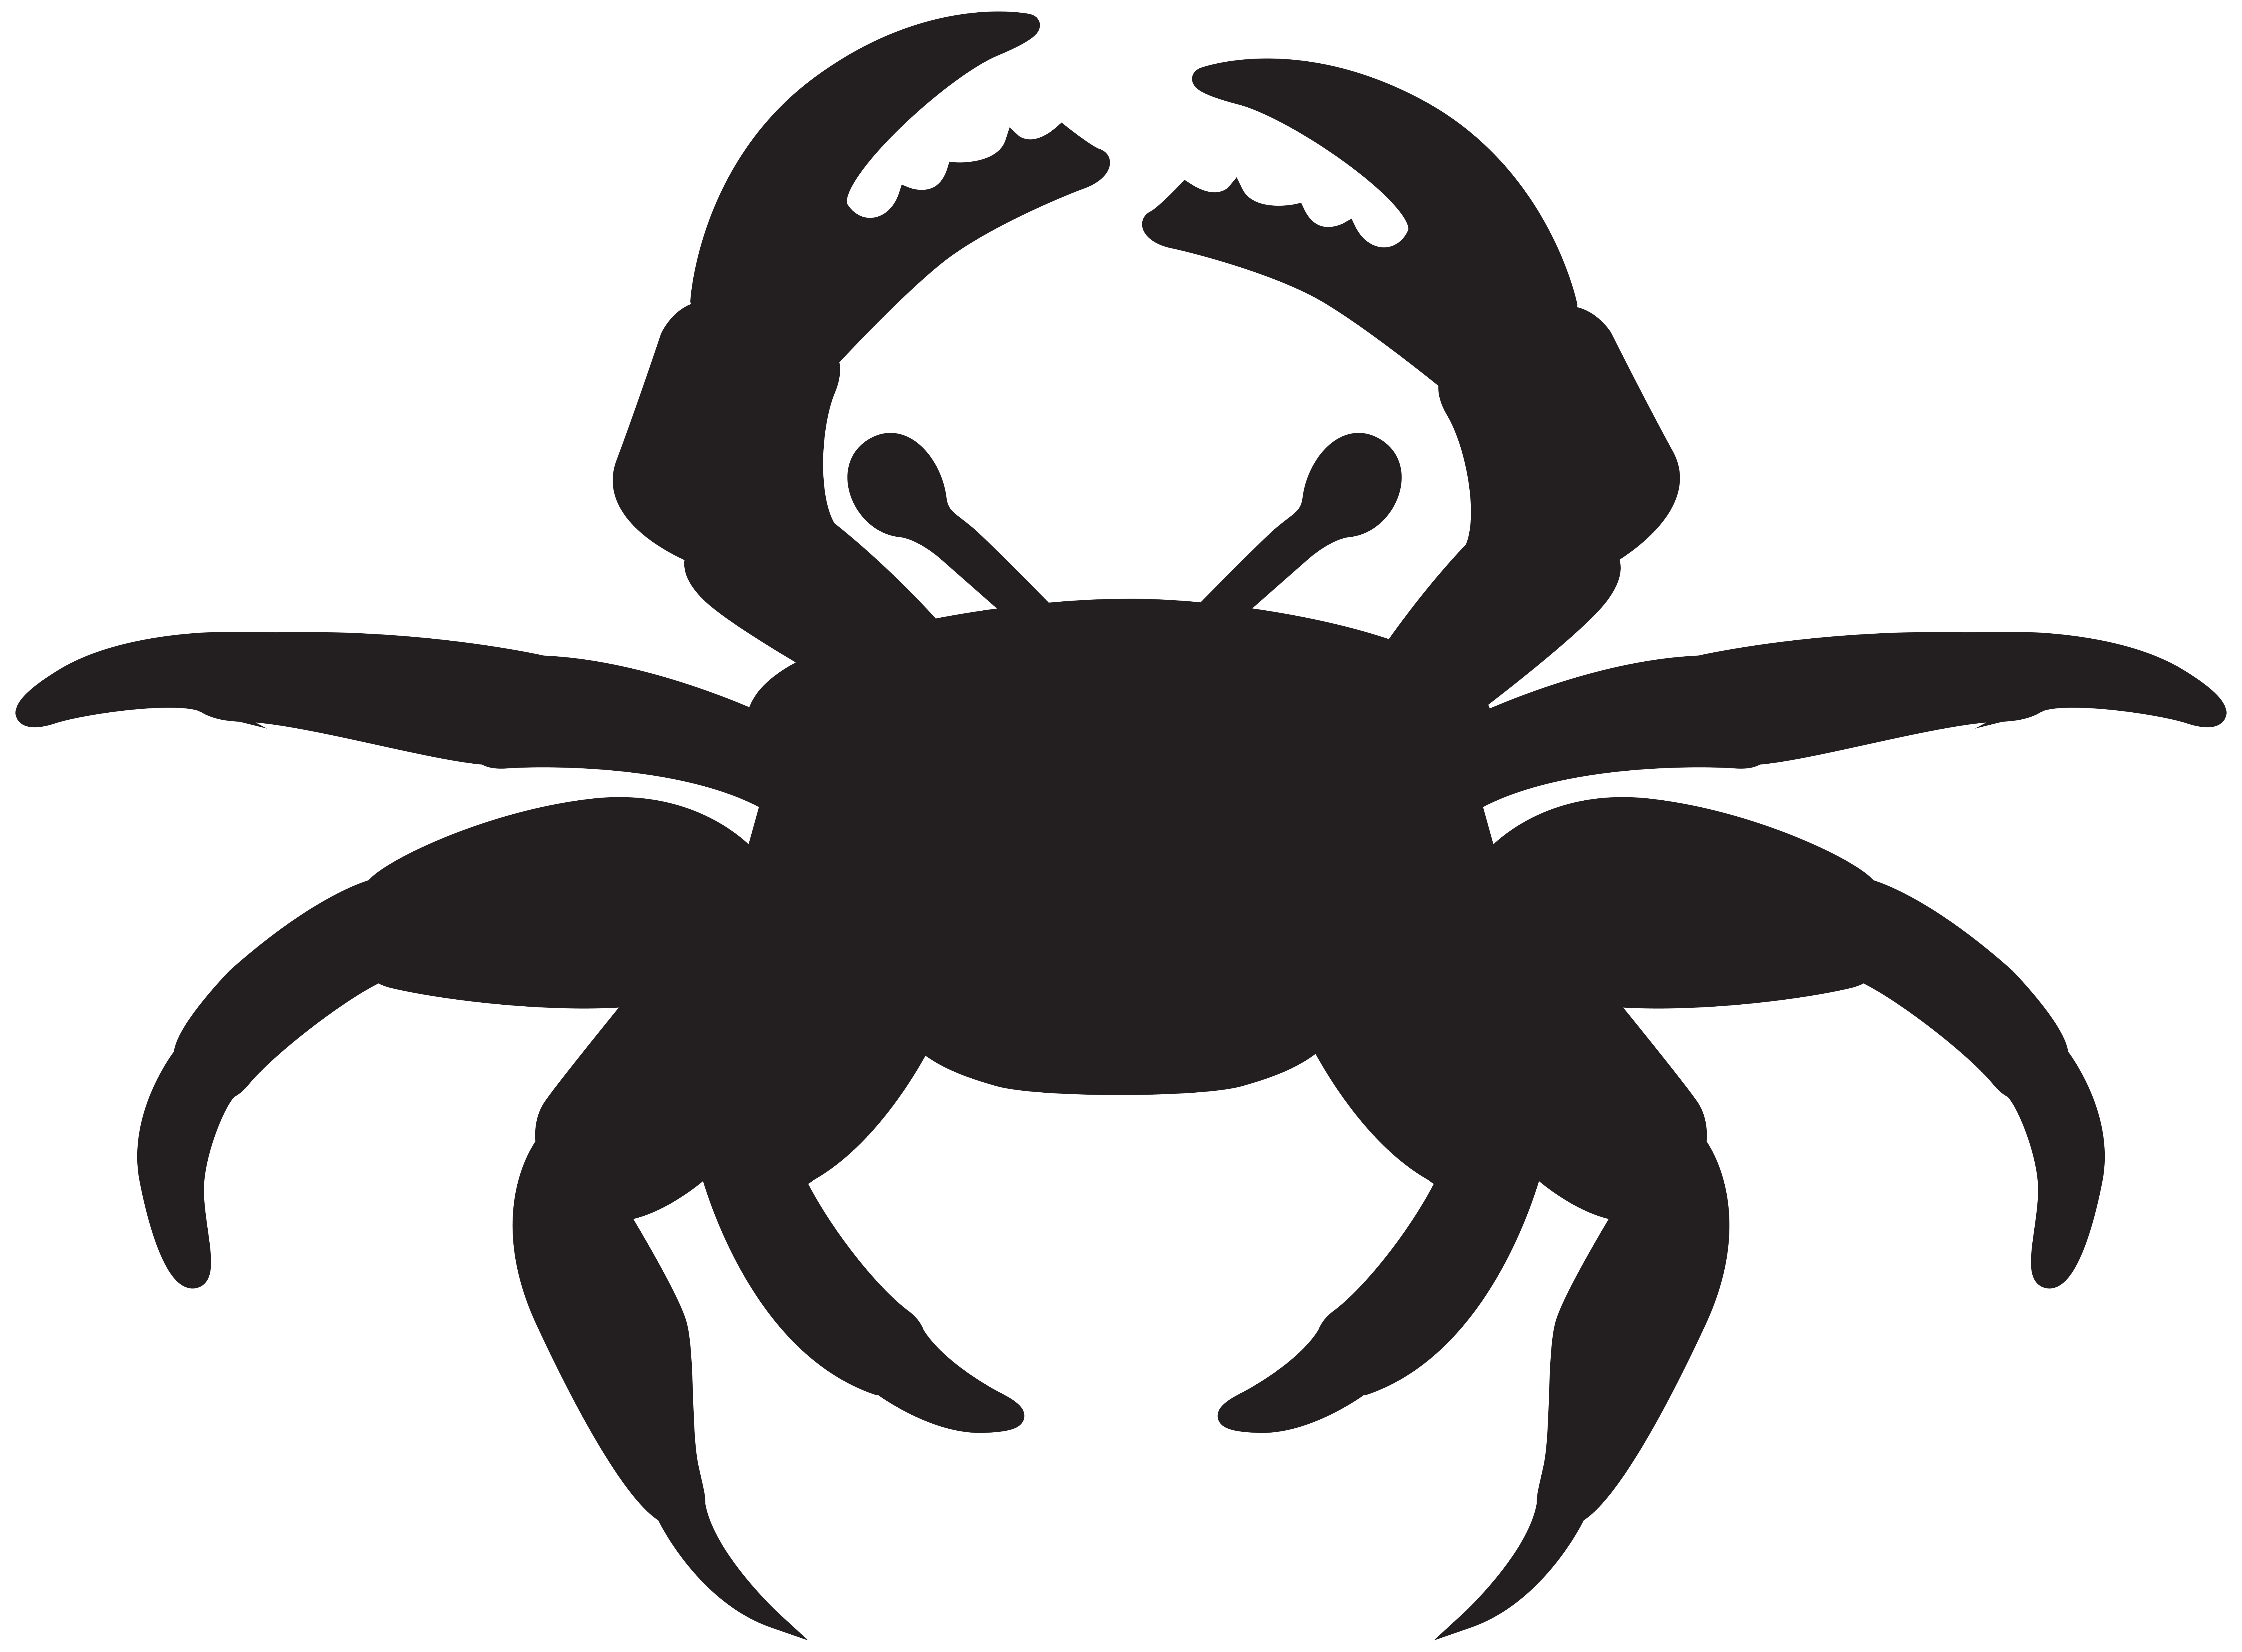 collection of black. Crab clipart ghost crab